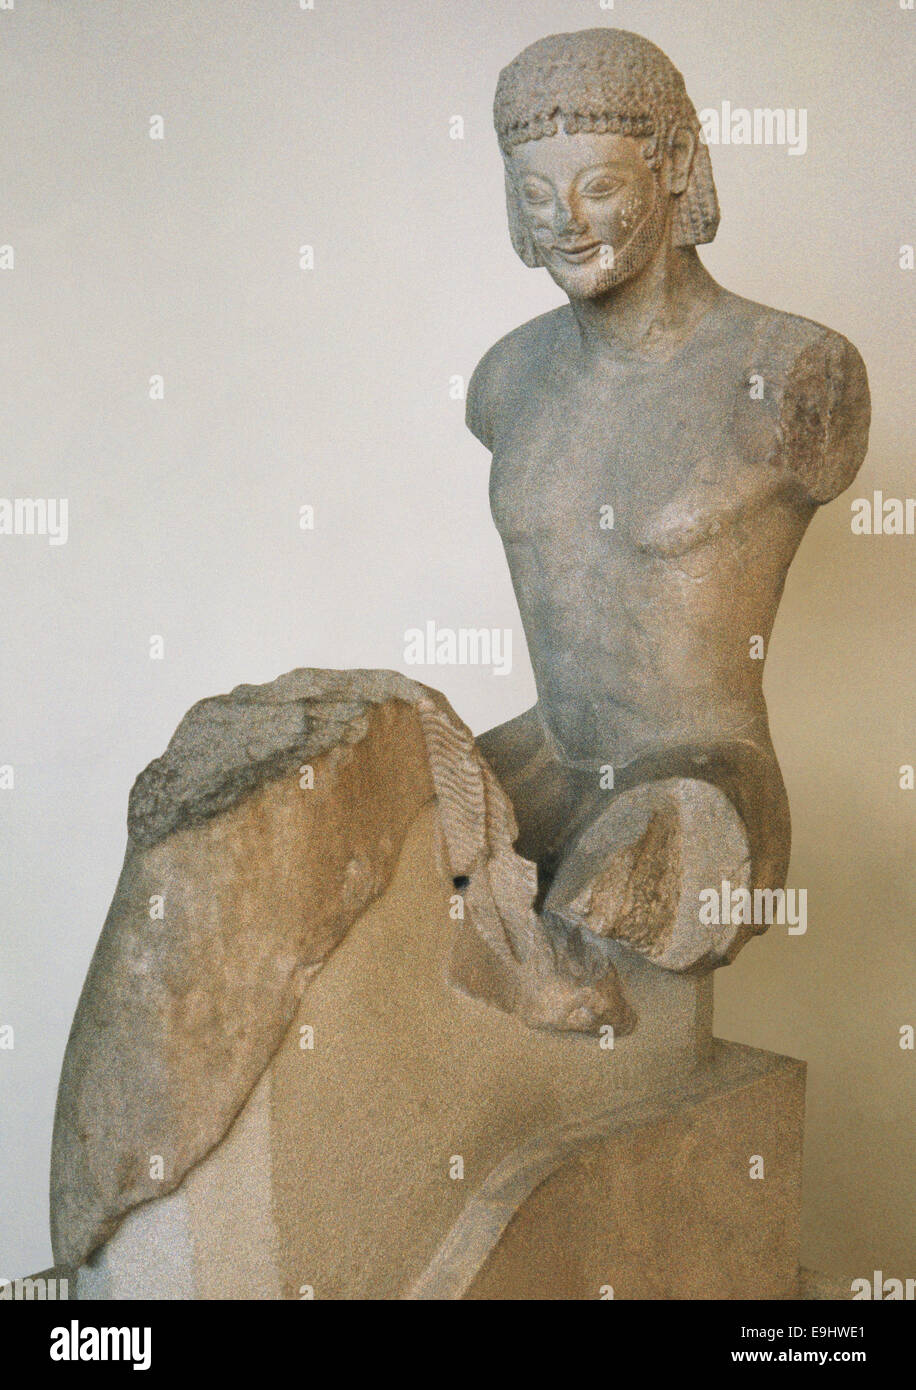 Greece. Archaic Period. Rampin Rider. Equestrian statue. C. 550 BC. Acropolis Museum. Athens. - Stock Image